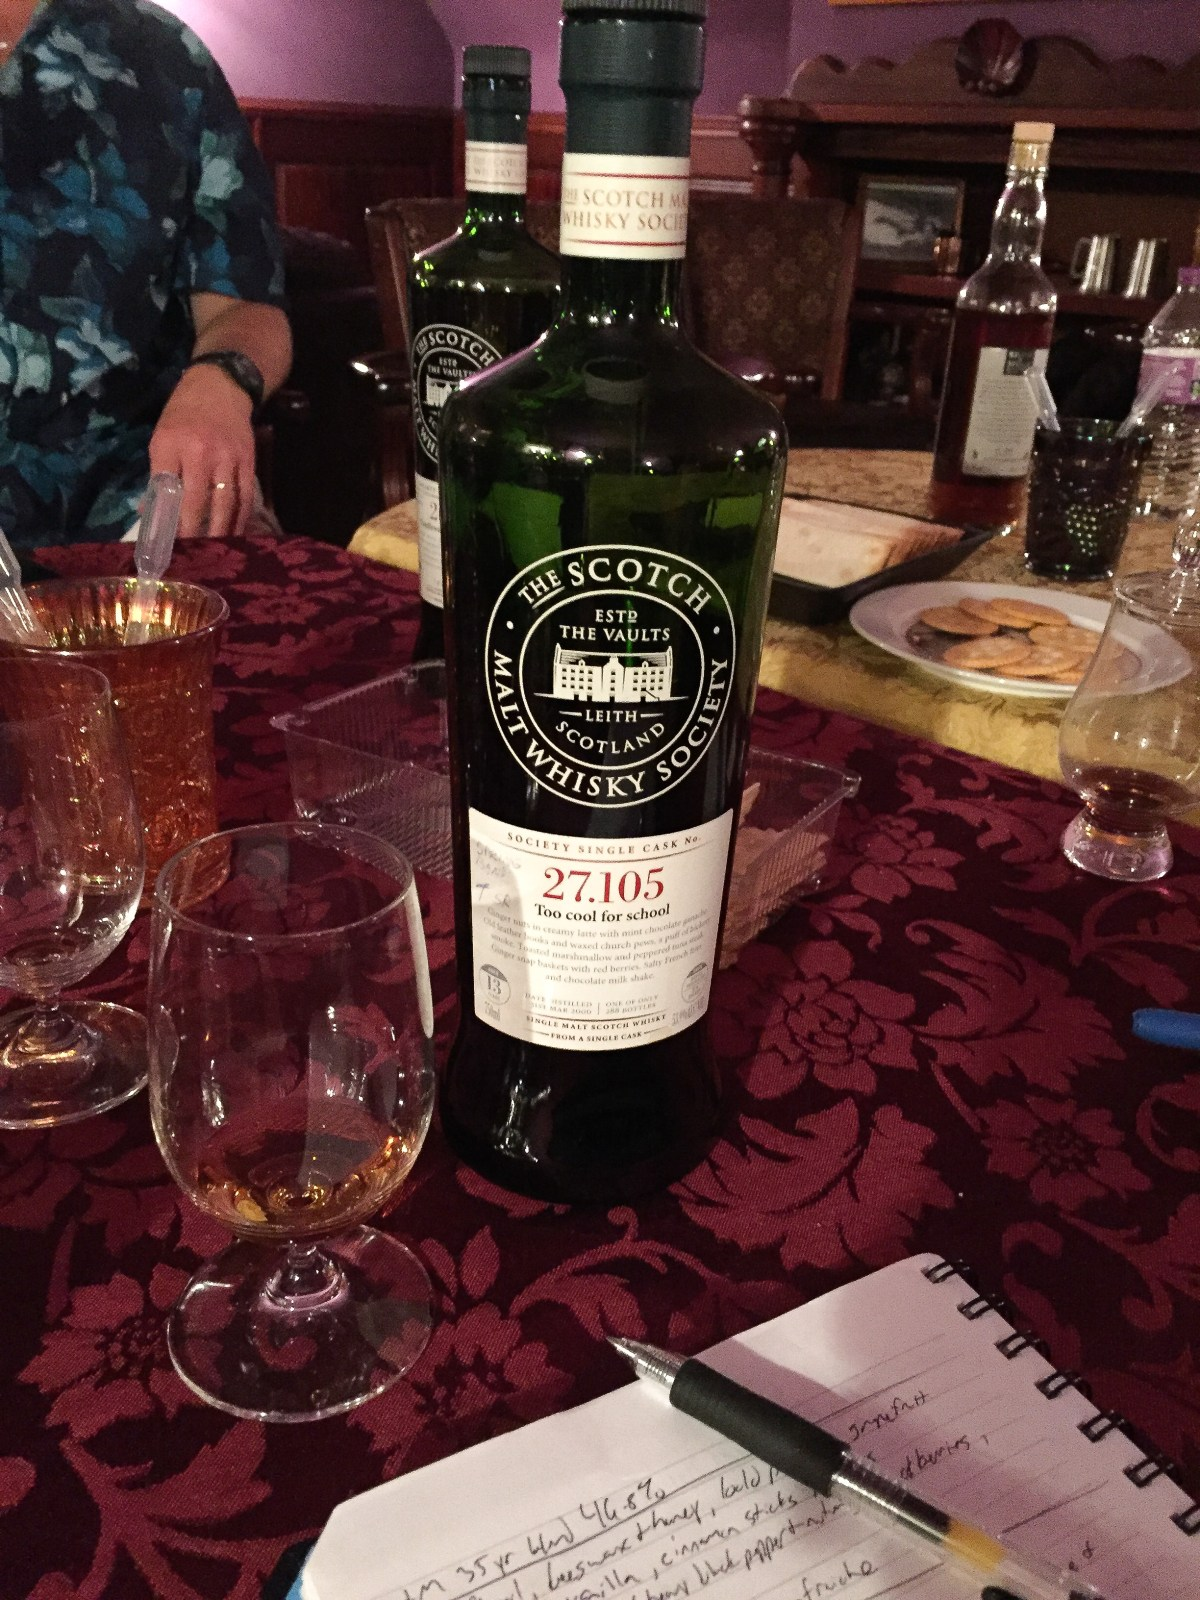 """SMWS 27.105 """"Too cool for school"""" (Springbank 13) Review"""